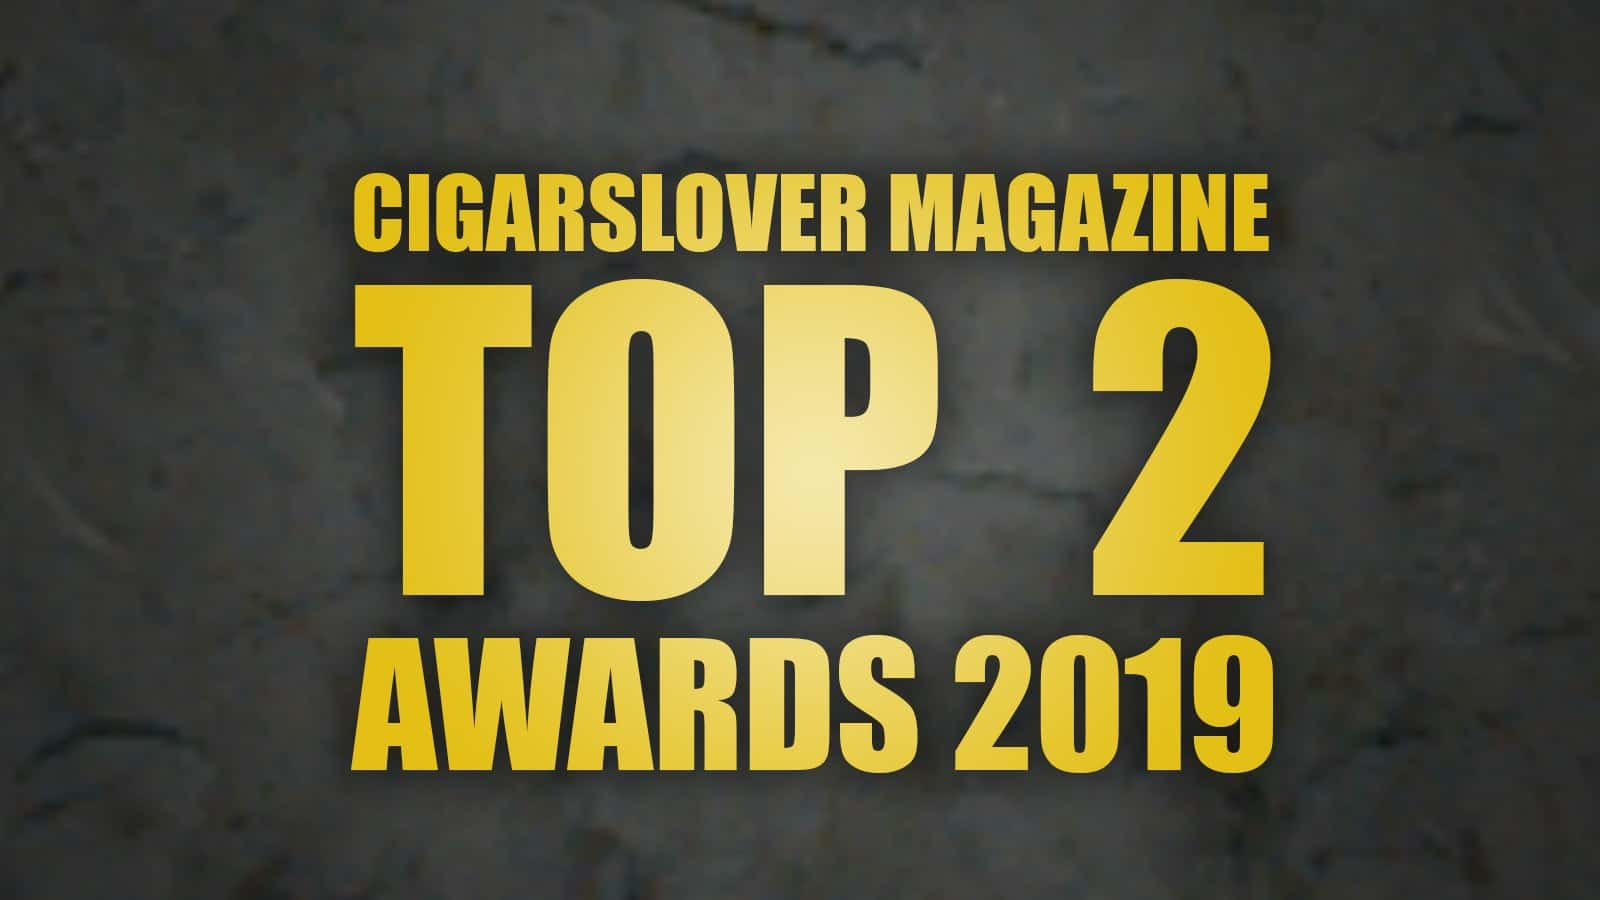 awards 2019 top 2